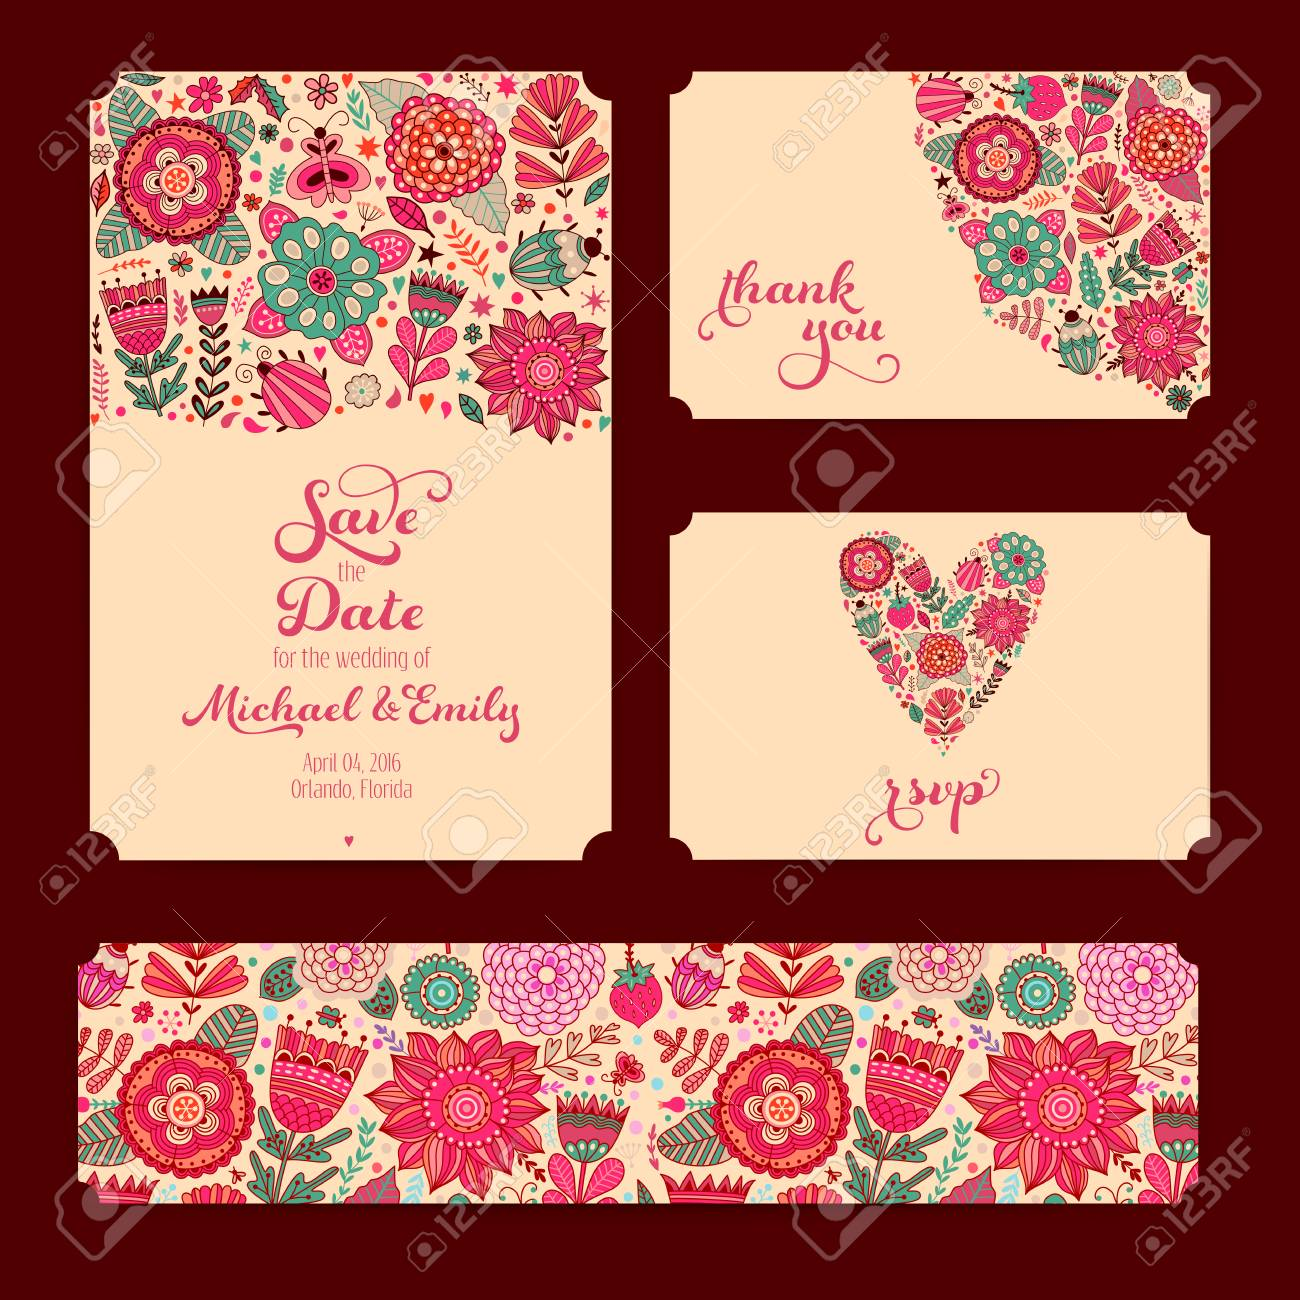 Wedding Invitation Template: Invitation, Envelope, Thank You ...